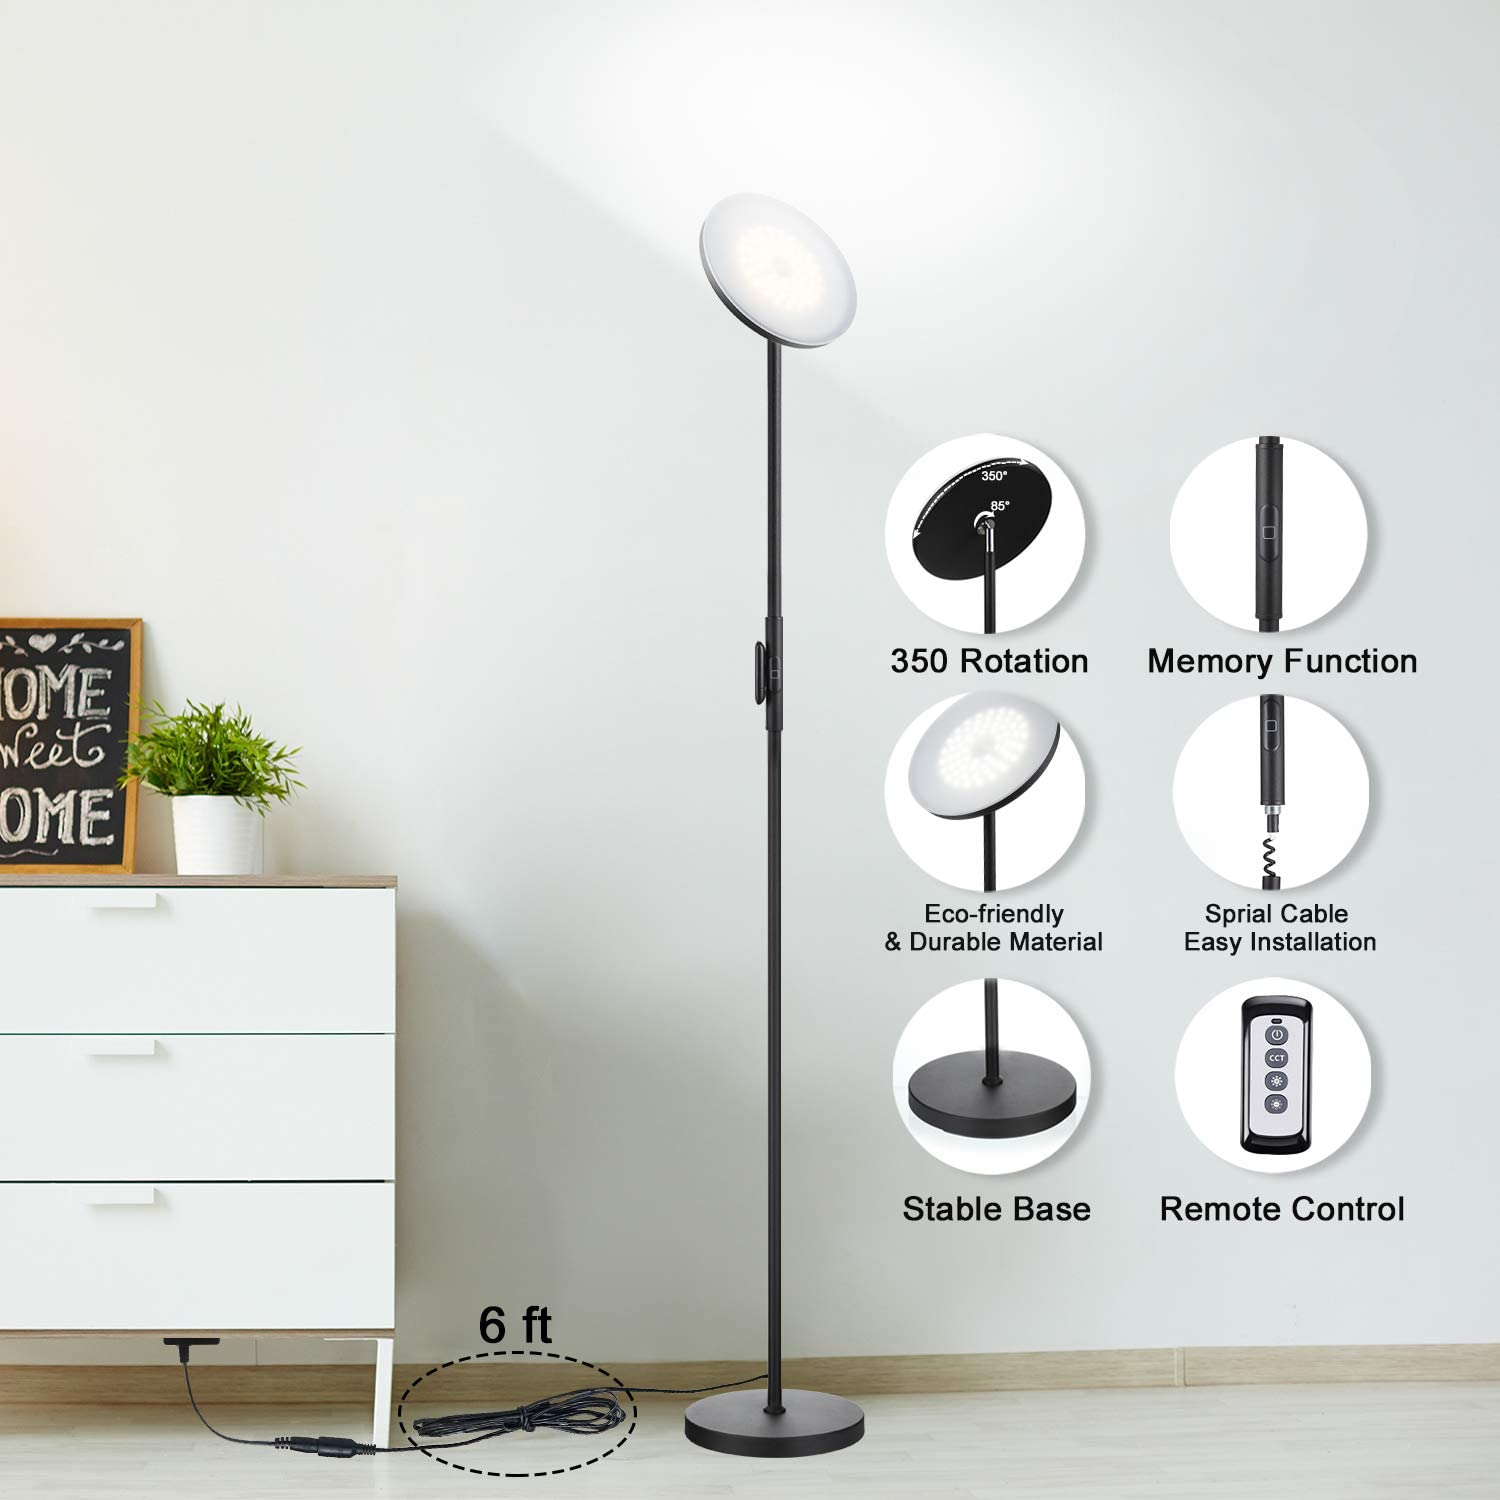 JOOFO Floor Lamp, 30W/2400LM Sky LED Modern Torchiere 3 Color Temperatures Super Bright Floor Lamps-Tall Standing Pole Light with Remote & Touch Control for Living Room, Bed Room, Office(Black) - -